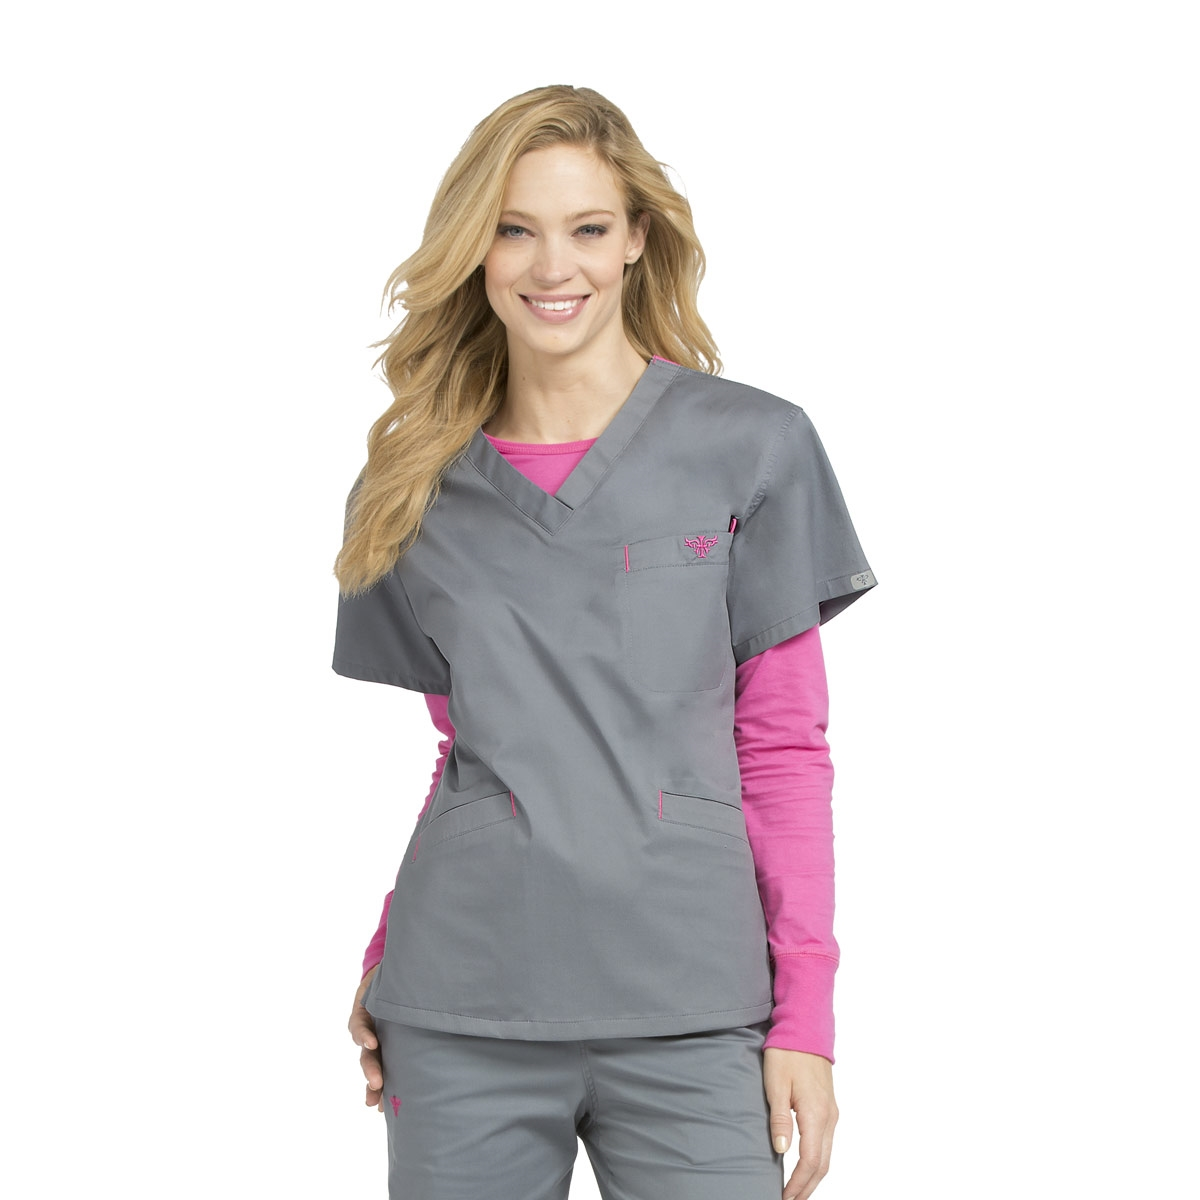 9d88cbf4471 Med Couture Signature V-Neck Top - Great selection of color combinations